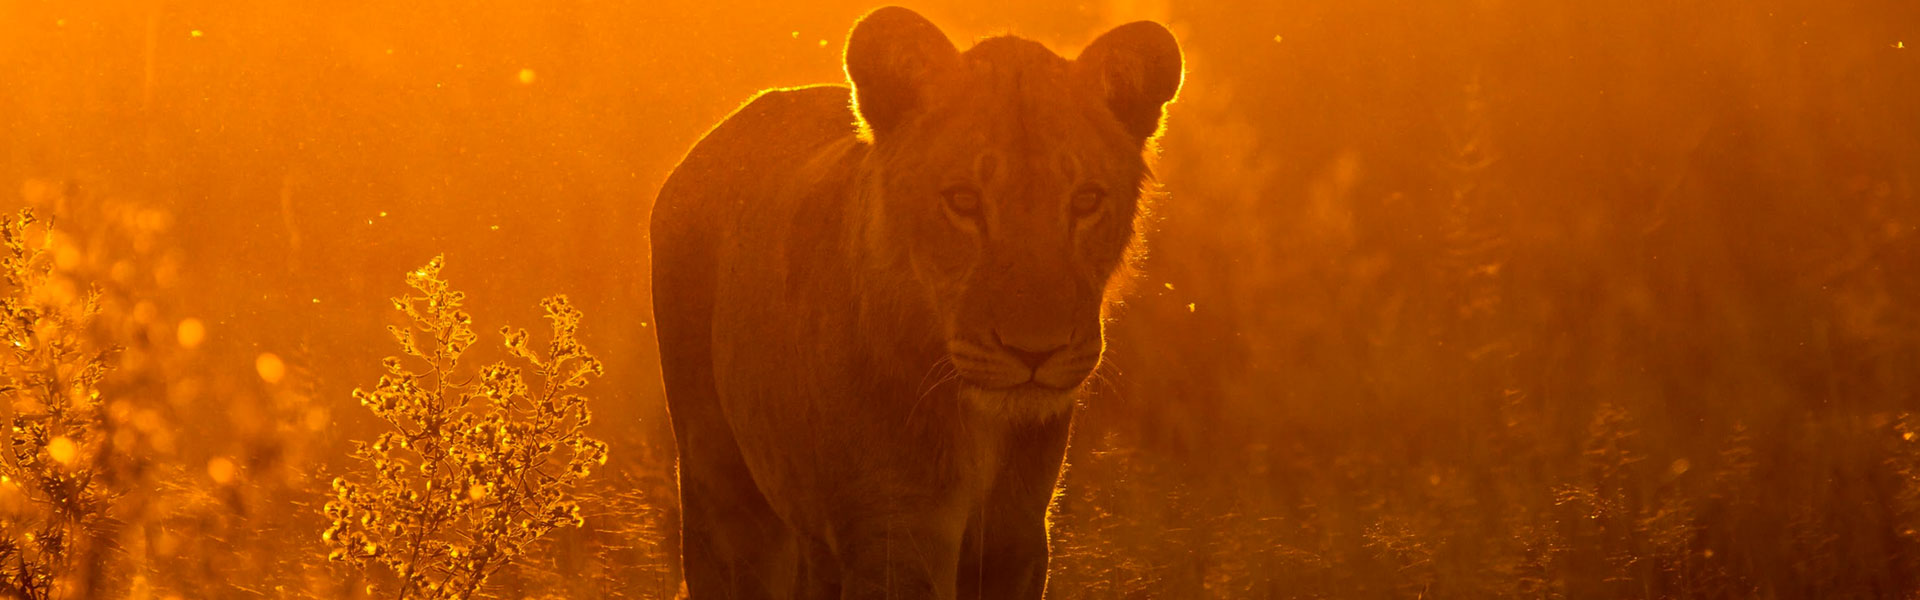 Southern Tanzania lioness walking in the sunset